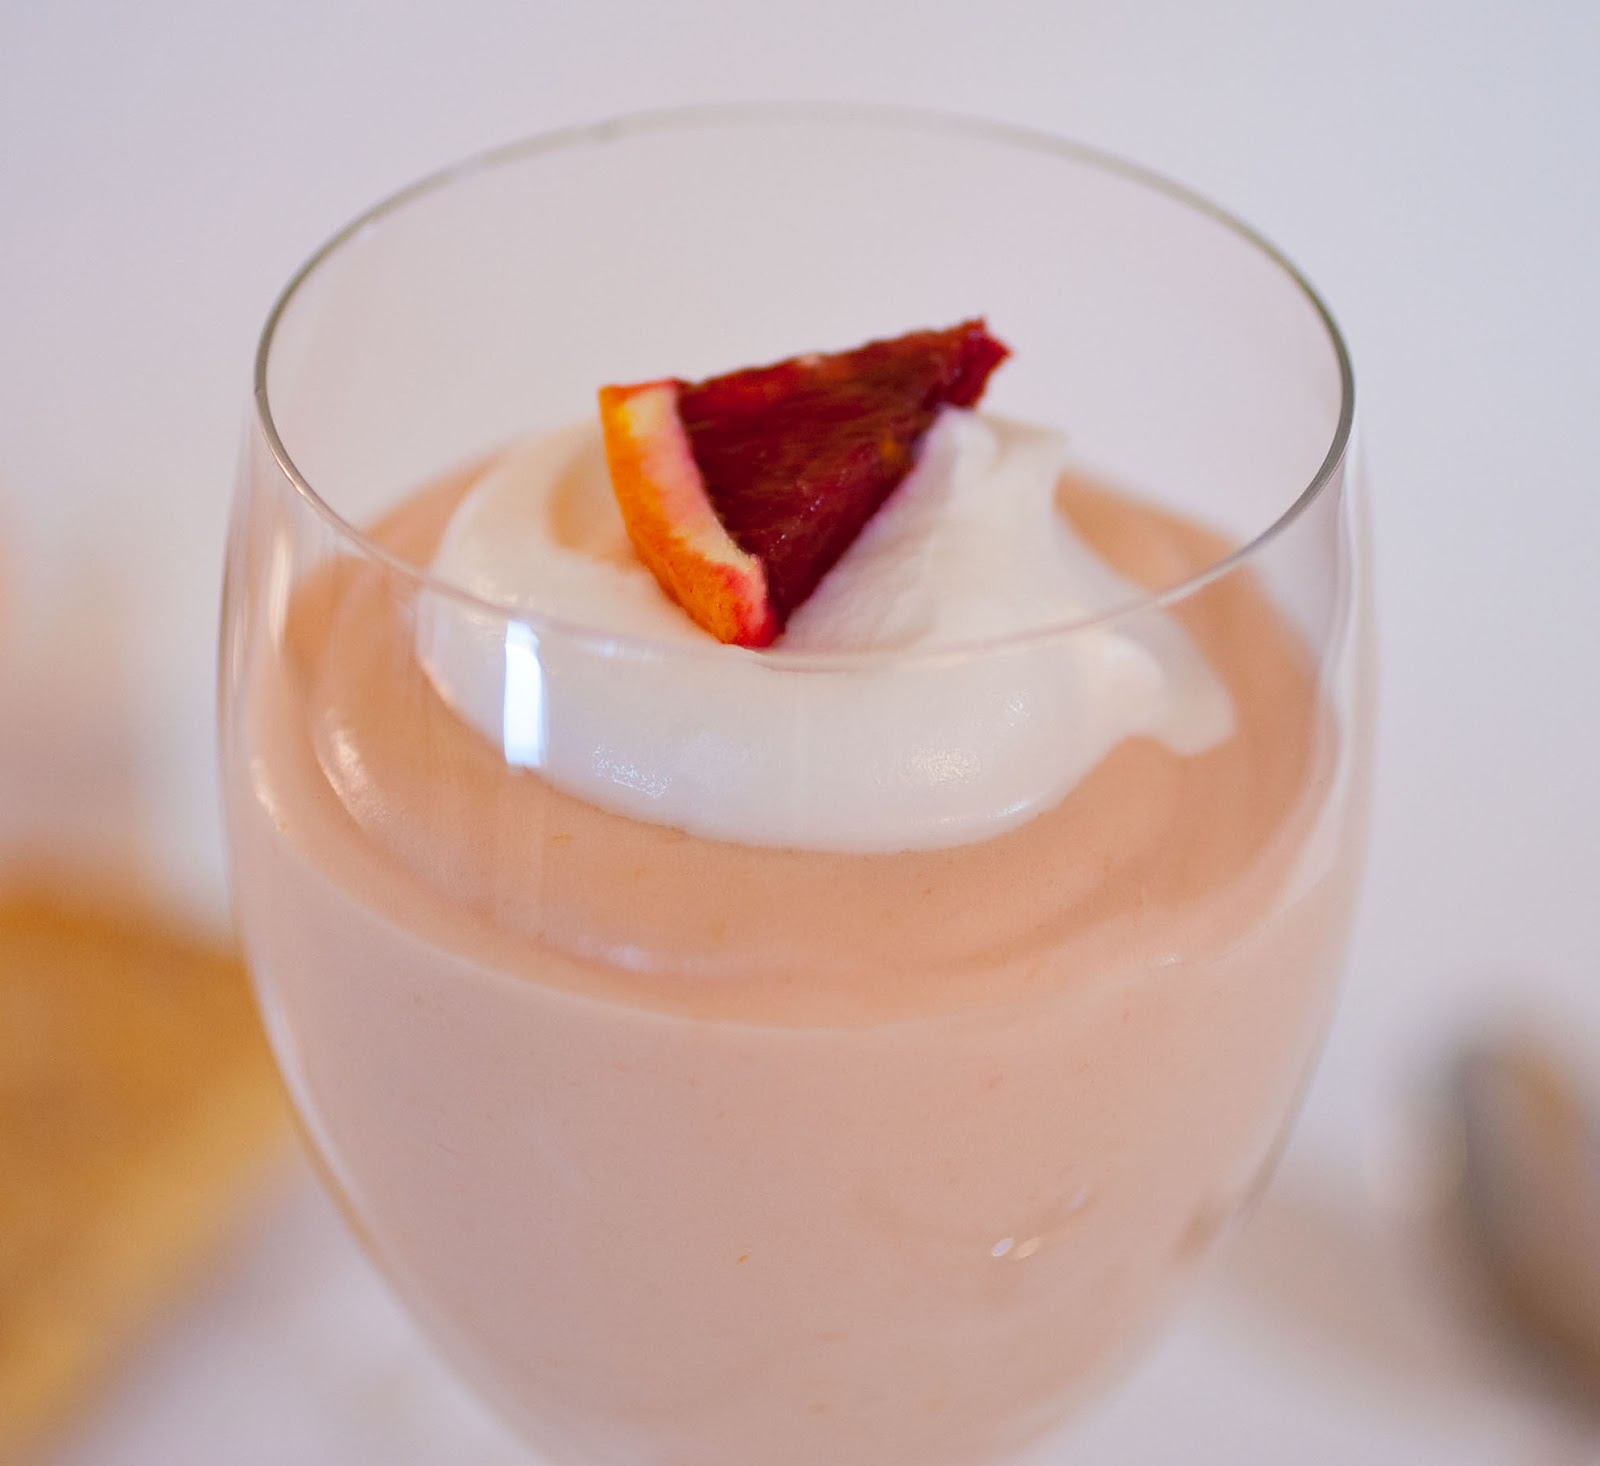 ... Dreams: Blood Orange Mousse with Ginger-Orange Shortbread Triangles